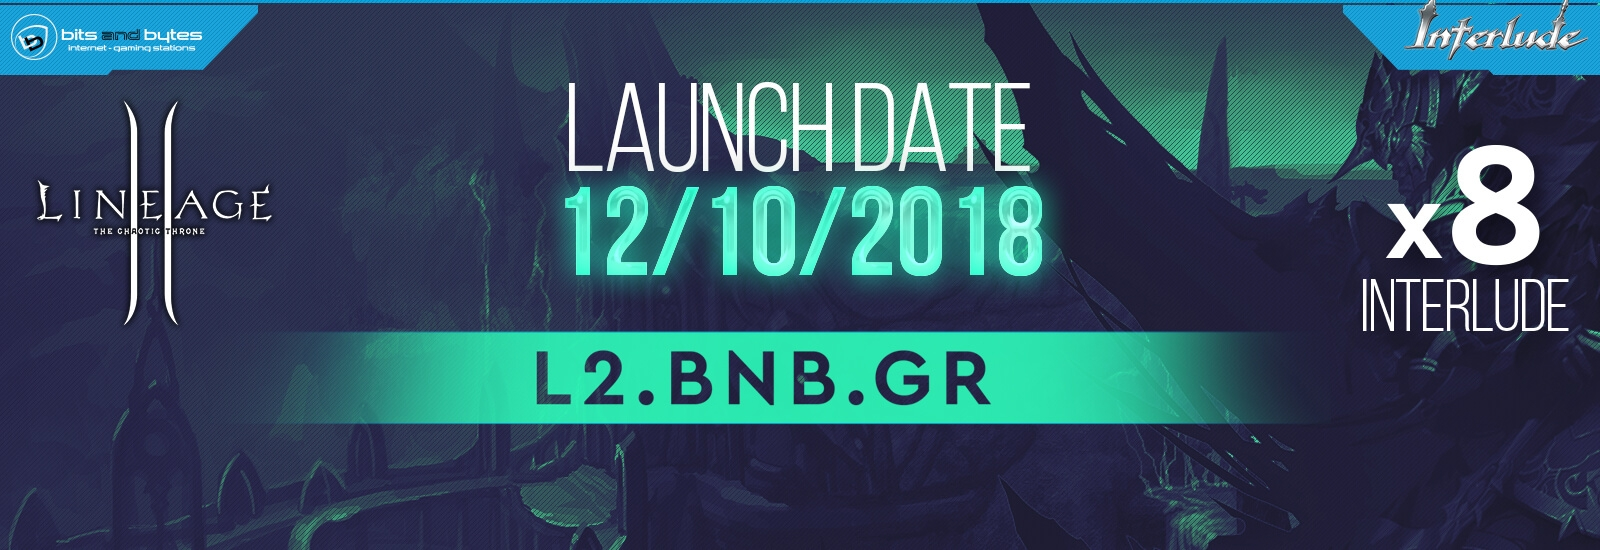 L2 BNB Interlude Core x8 - 12/10/2018